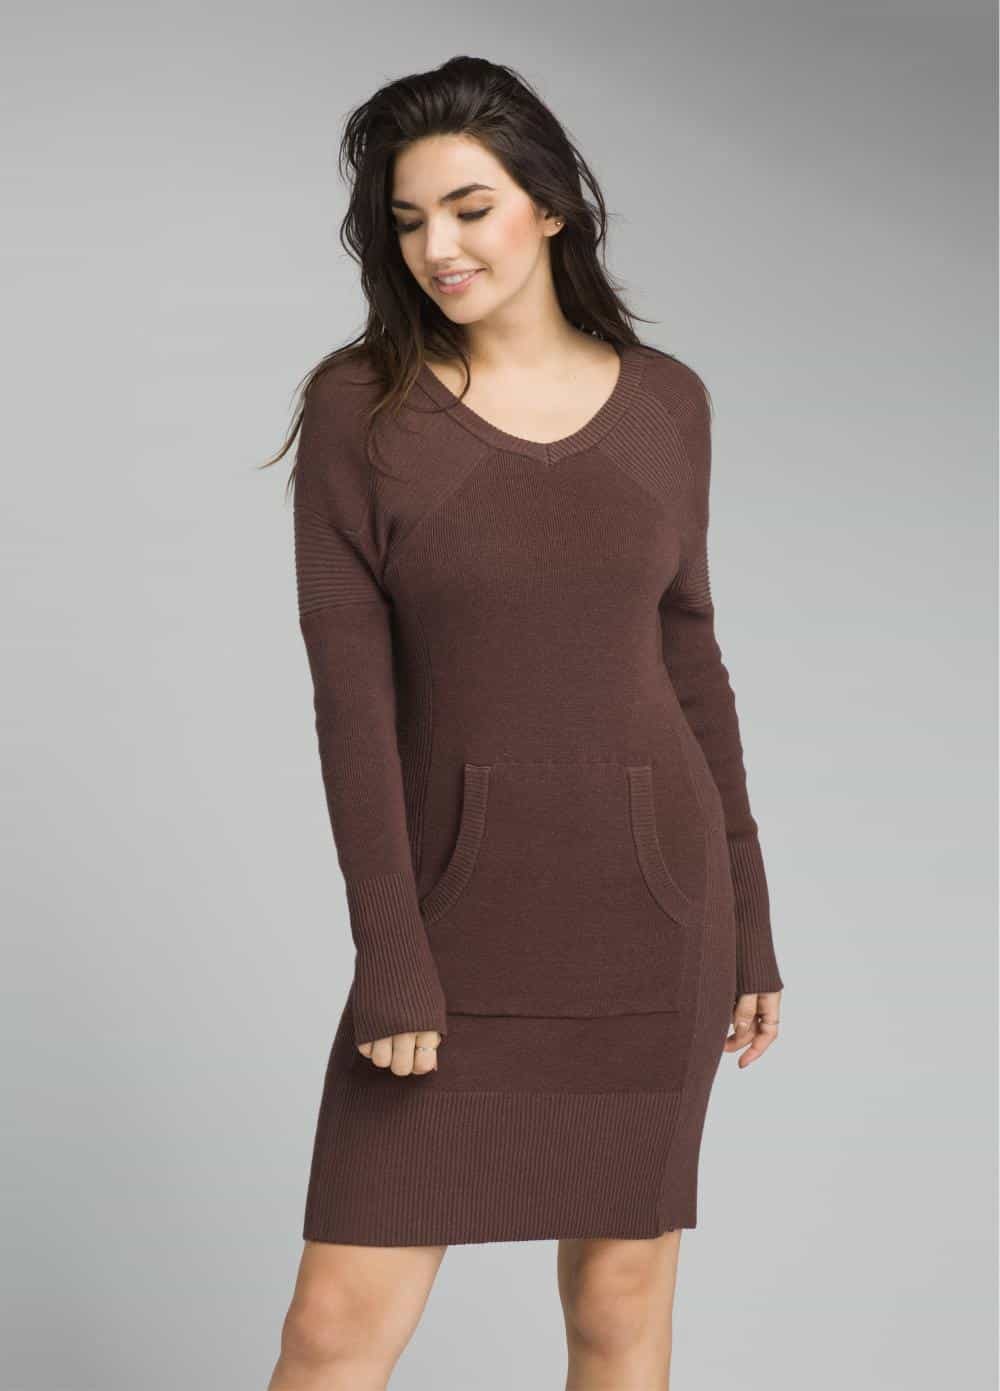 prAna-Avalone Dress - Women's